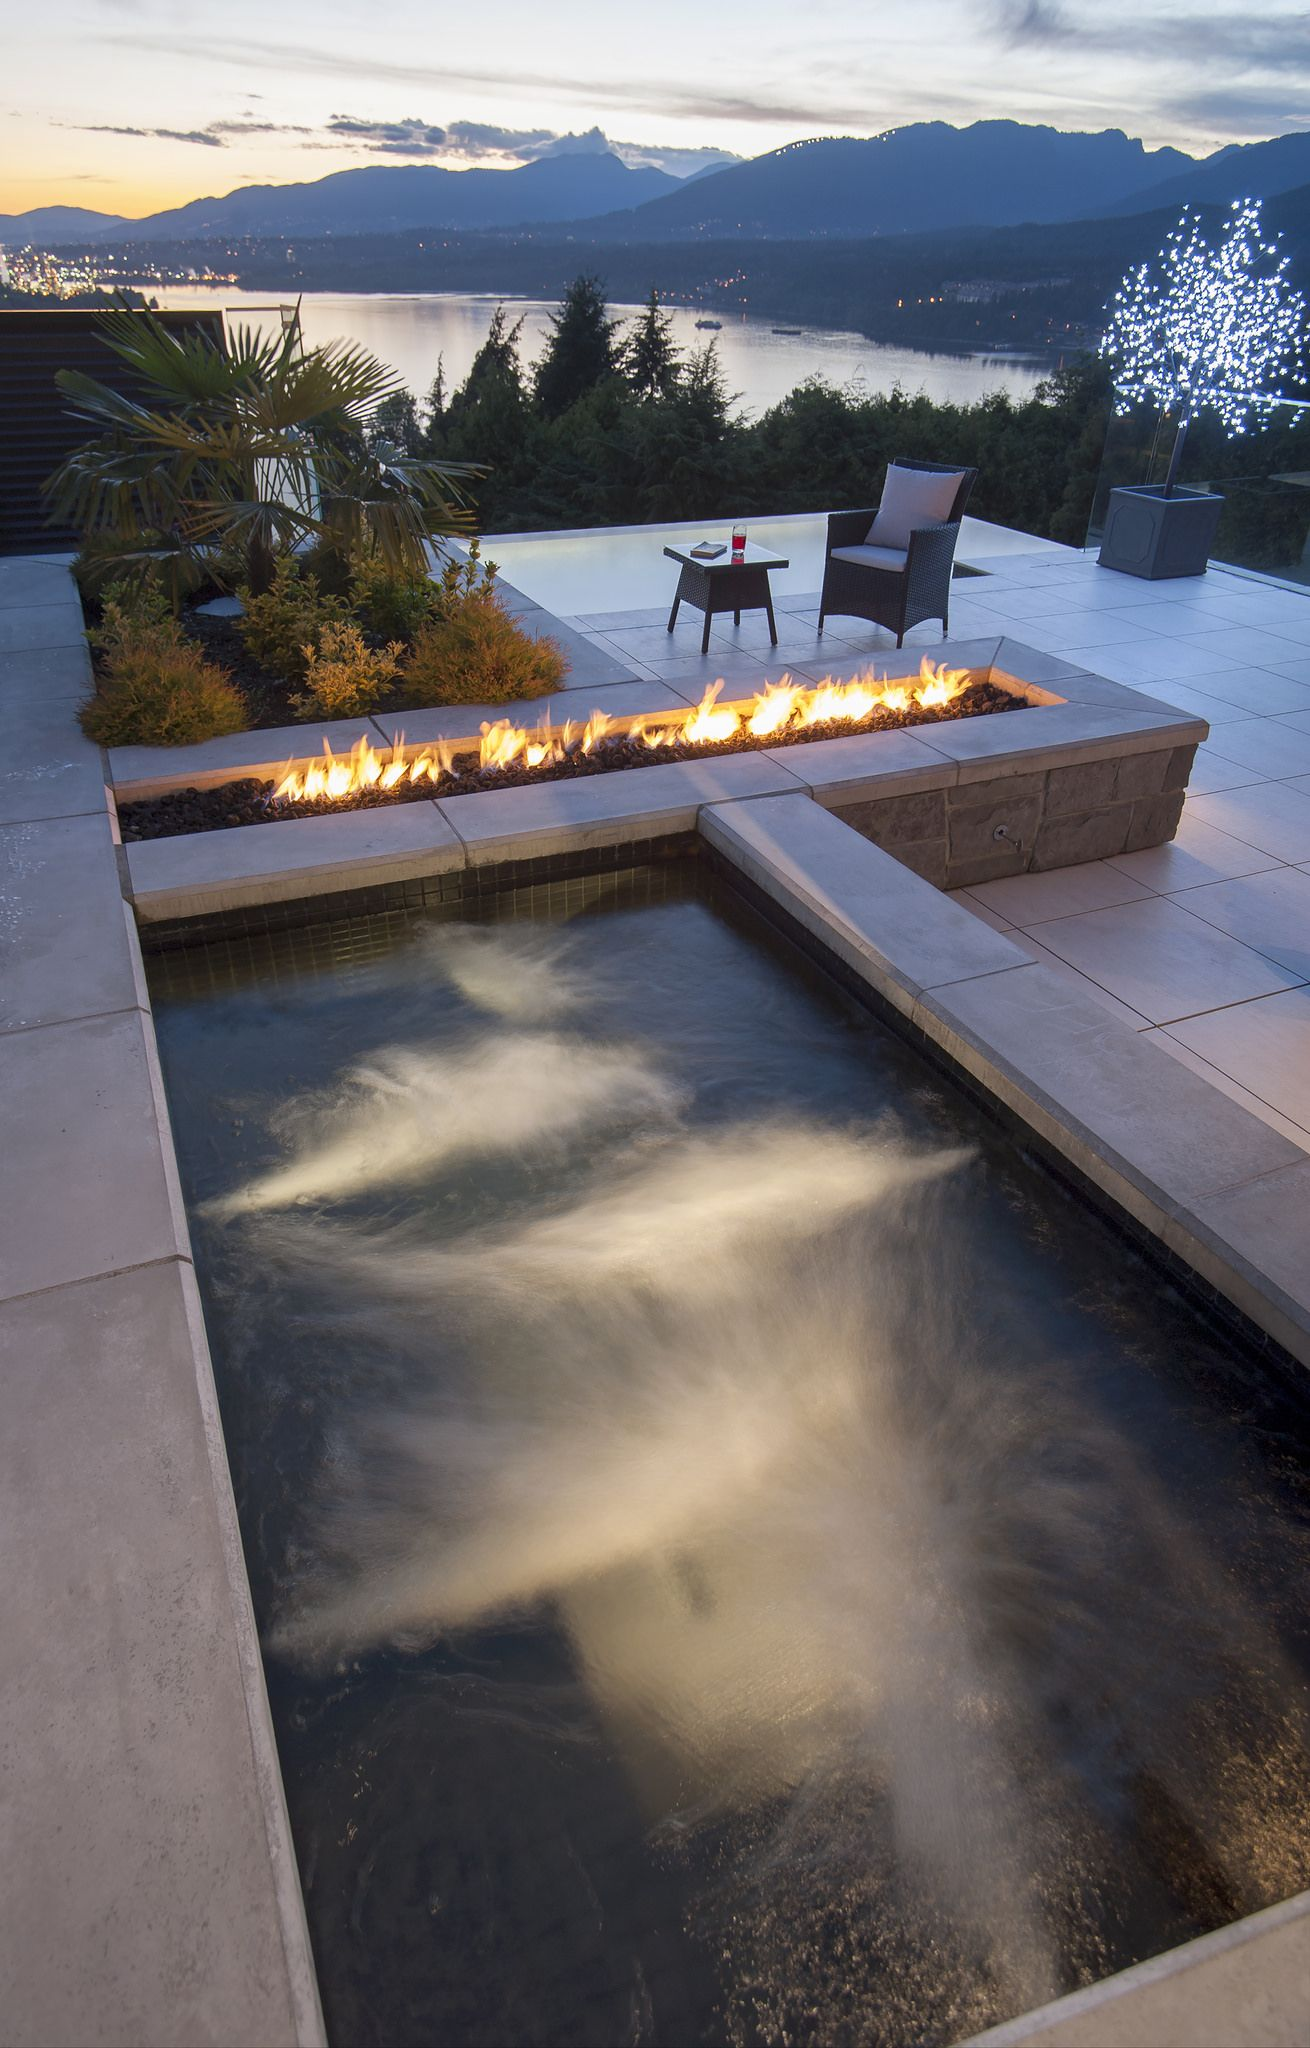 Alka Pool Cooler Weather Is The Perfect Excuse To Cozy Up With